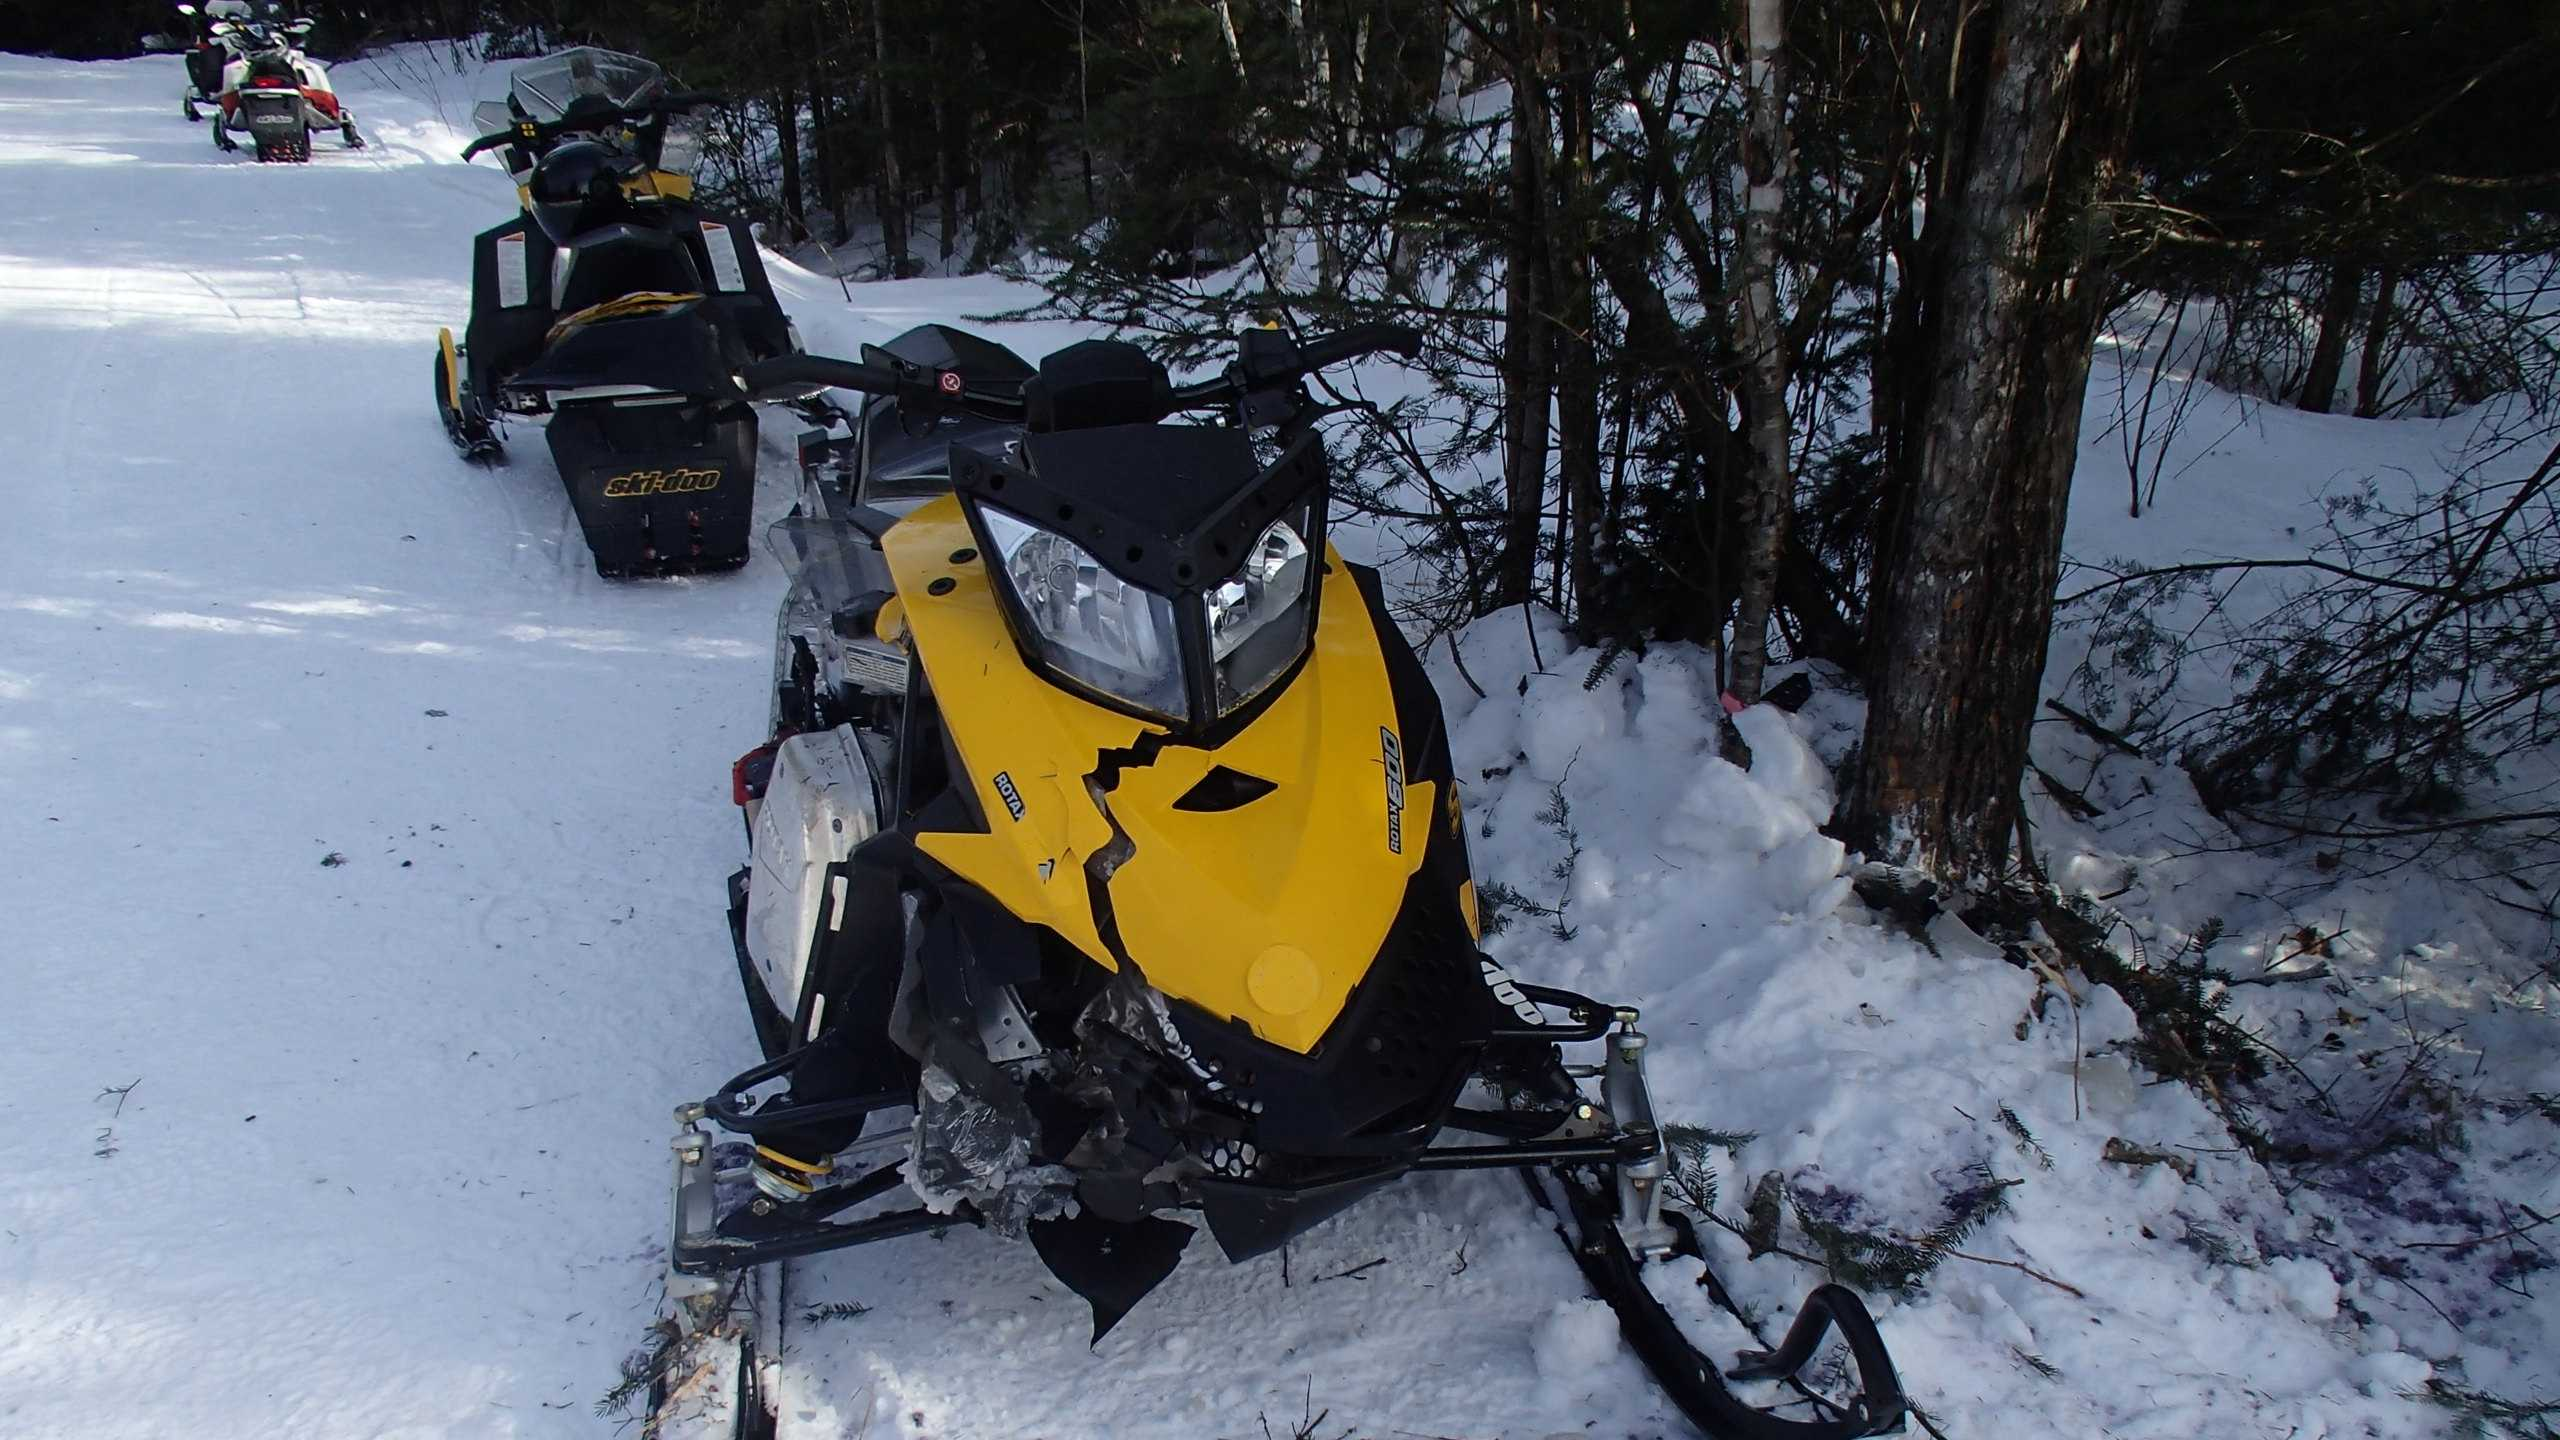 Pelham man injured in snowmobile accident